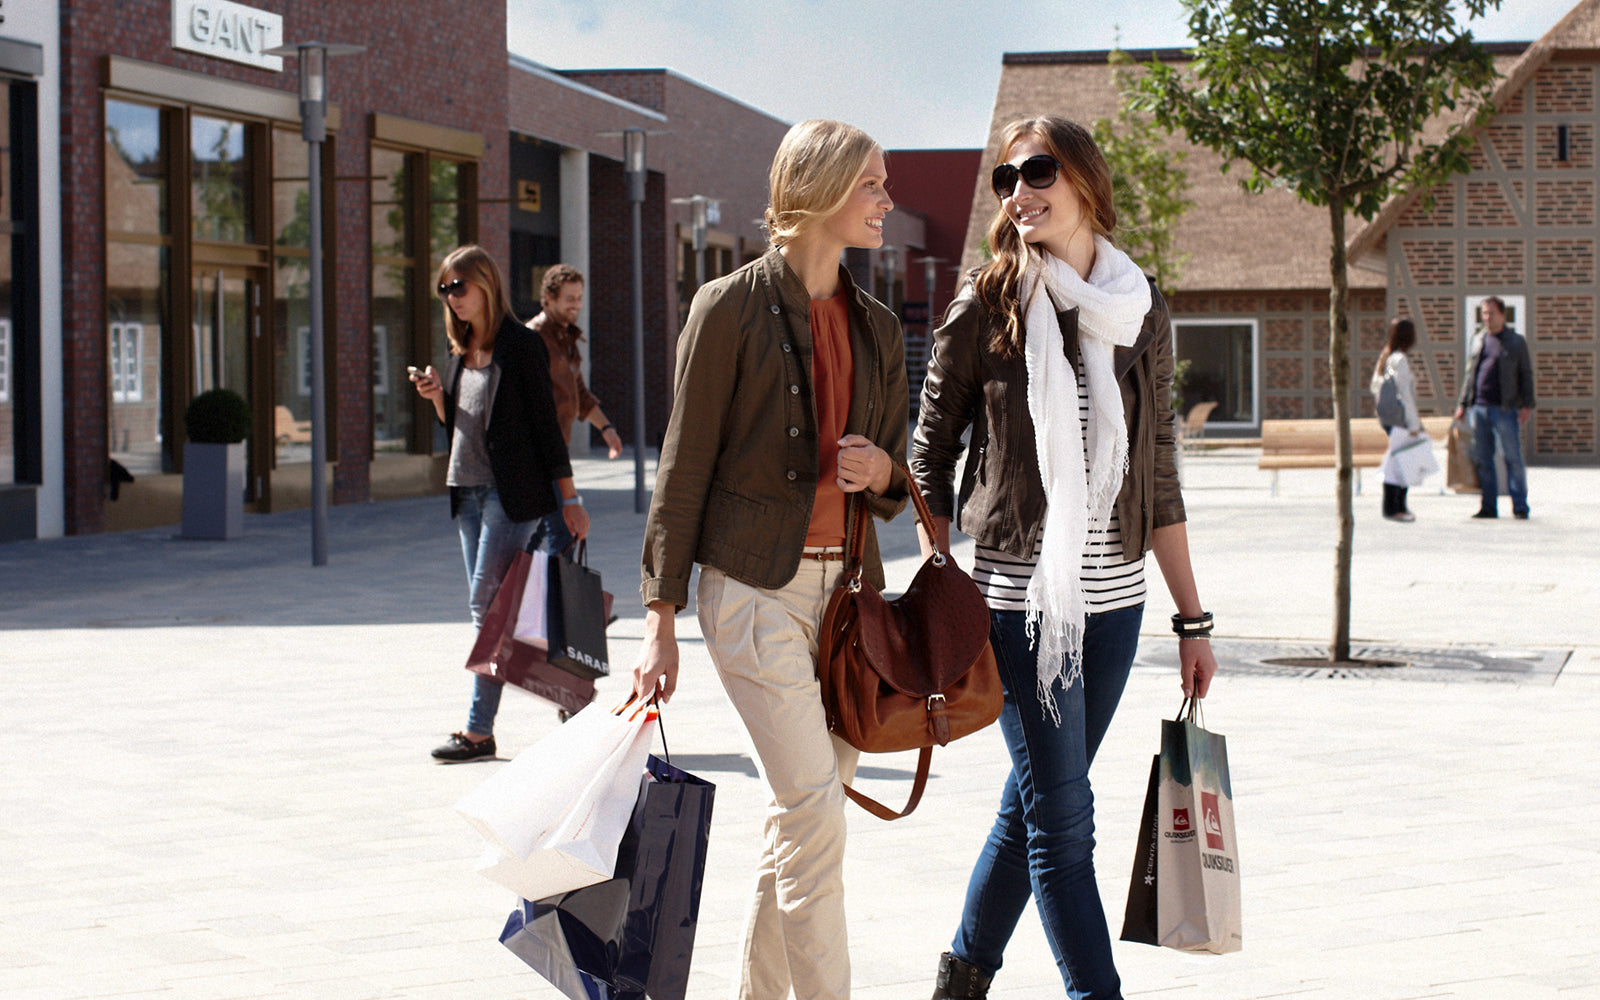 Outlet Shopping Tour with Personal Shopper